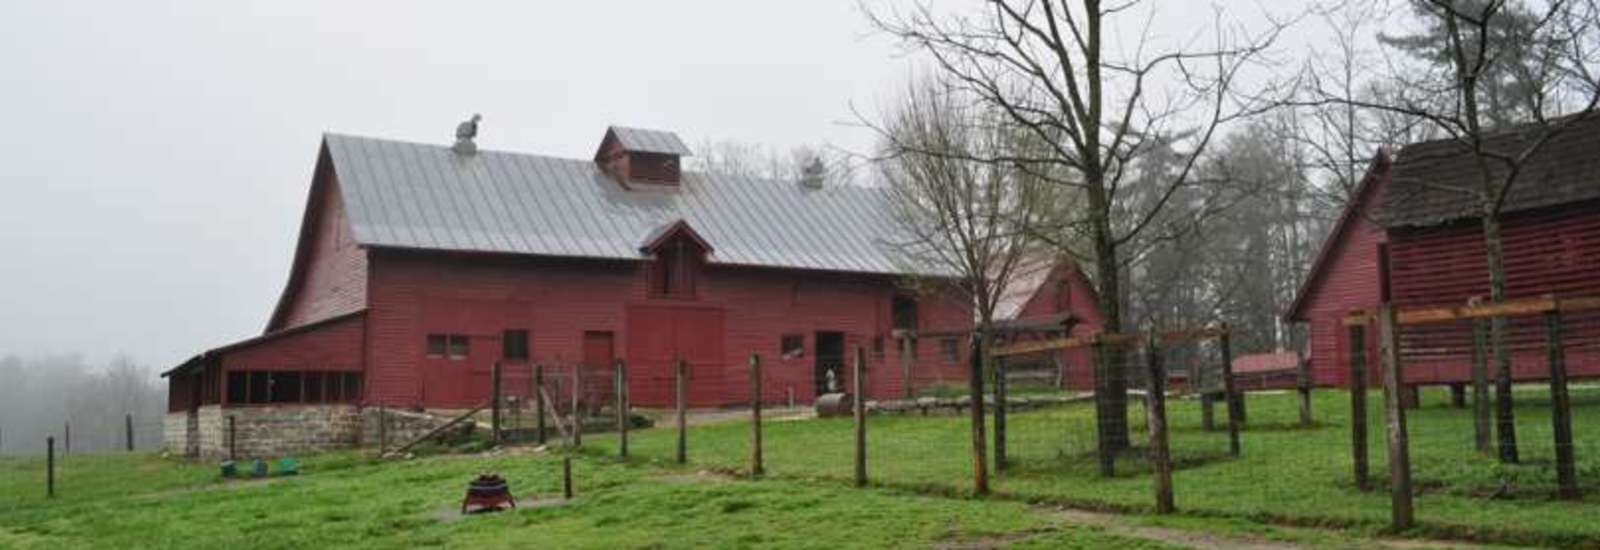 Barns at Carl Sandburg's Home